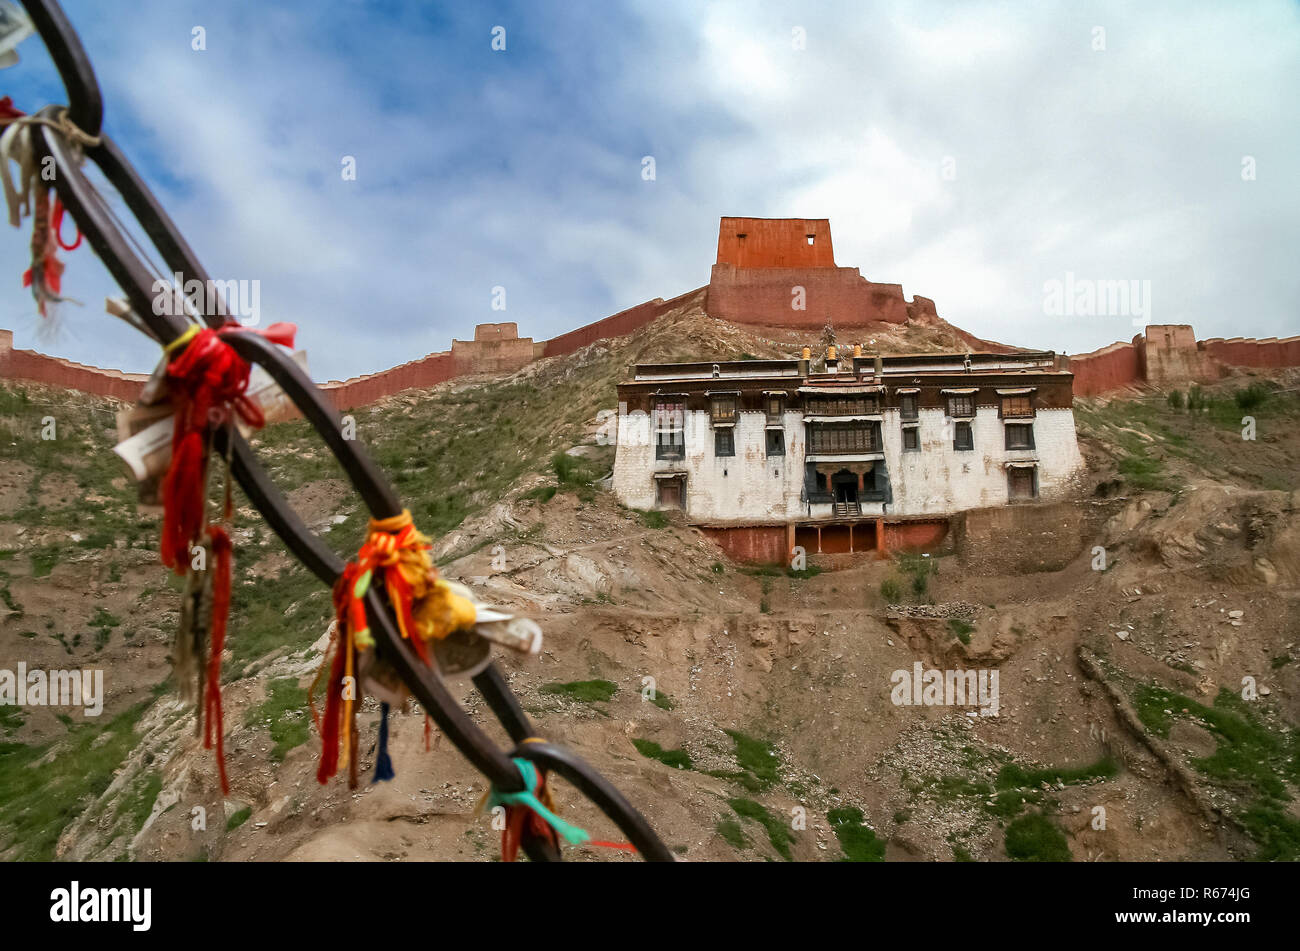 View of the monastery building in Gyantse - Stock Image